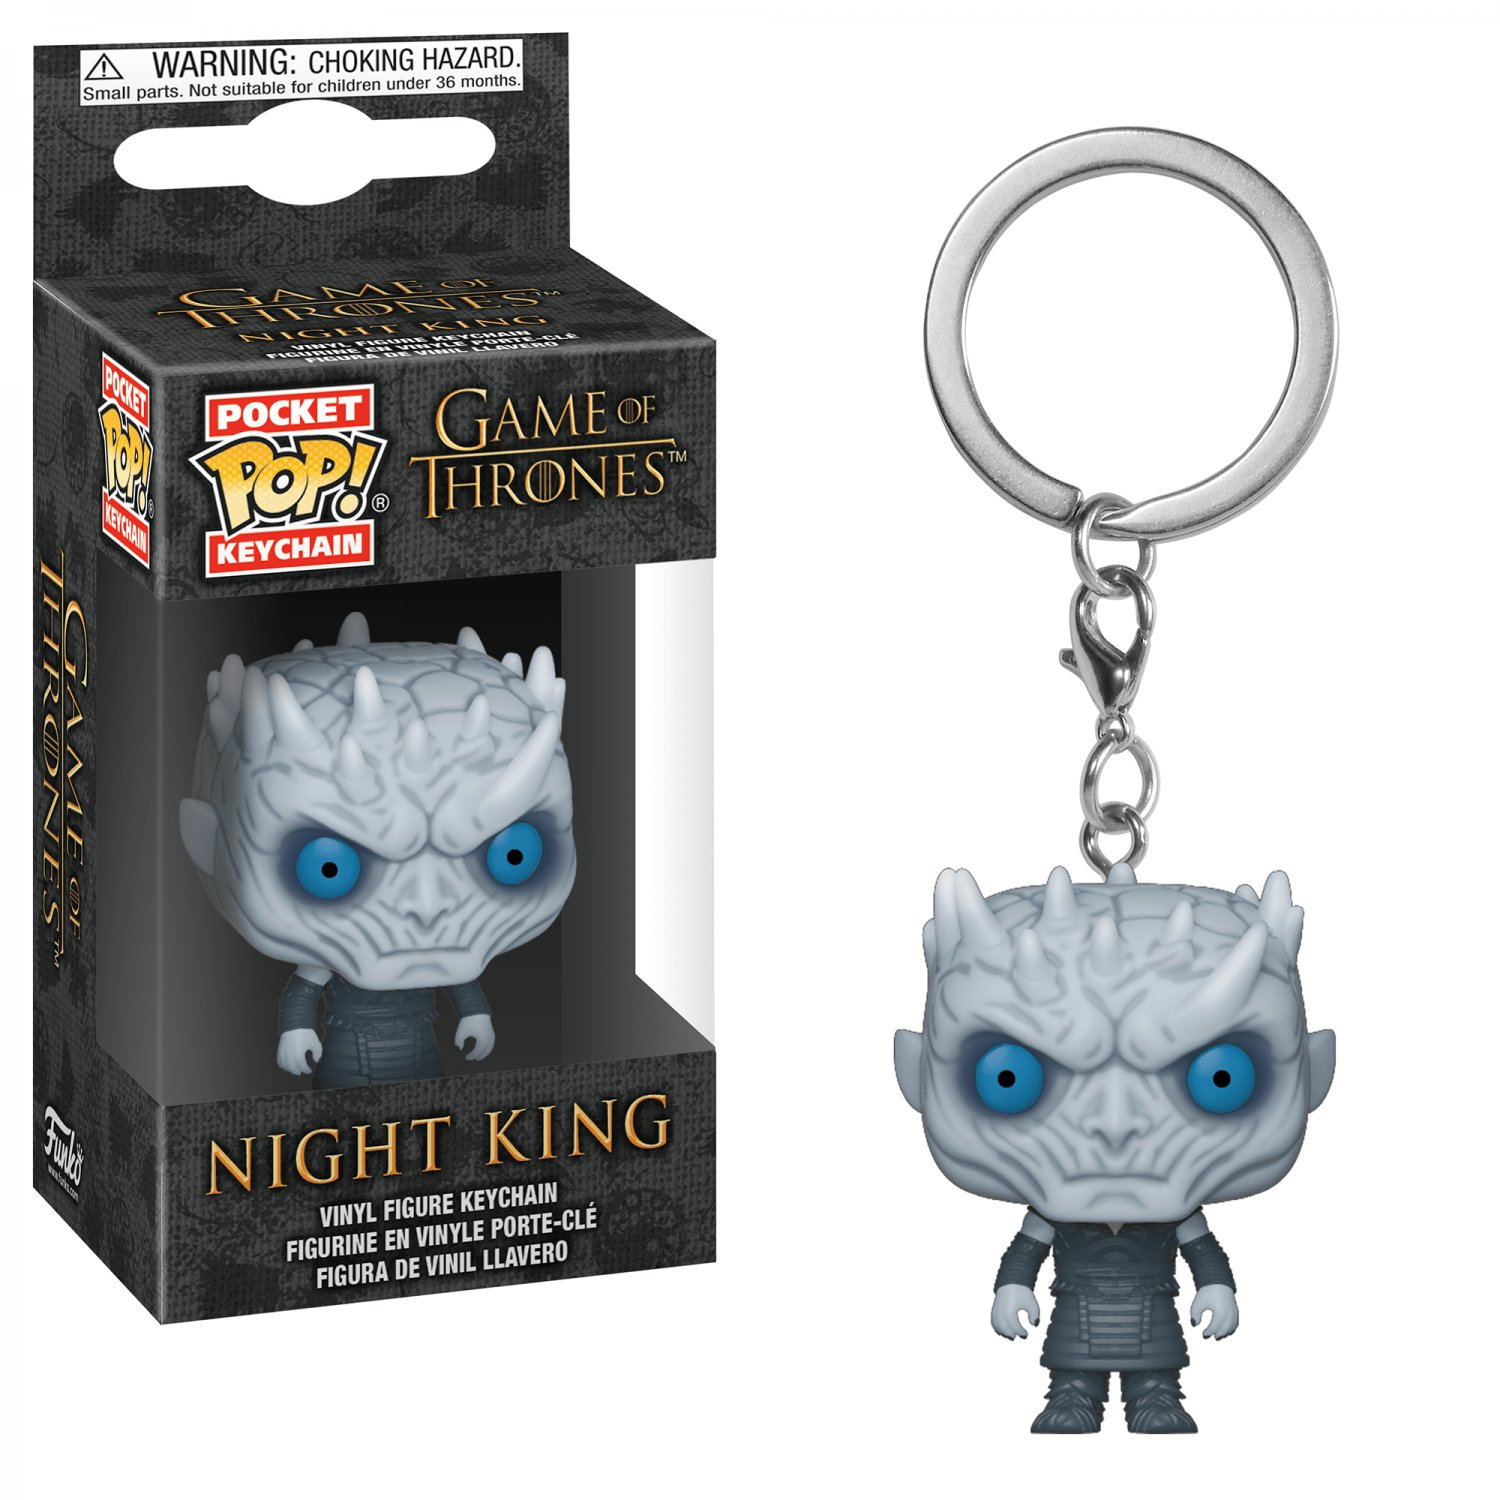 Night King Game of Thrones POP! Keychain Action Figure Vinyl Minifigure Toy